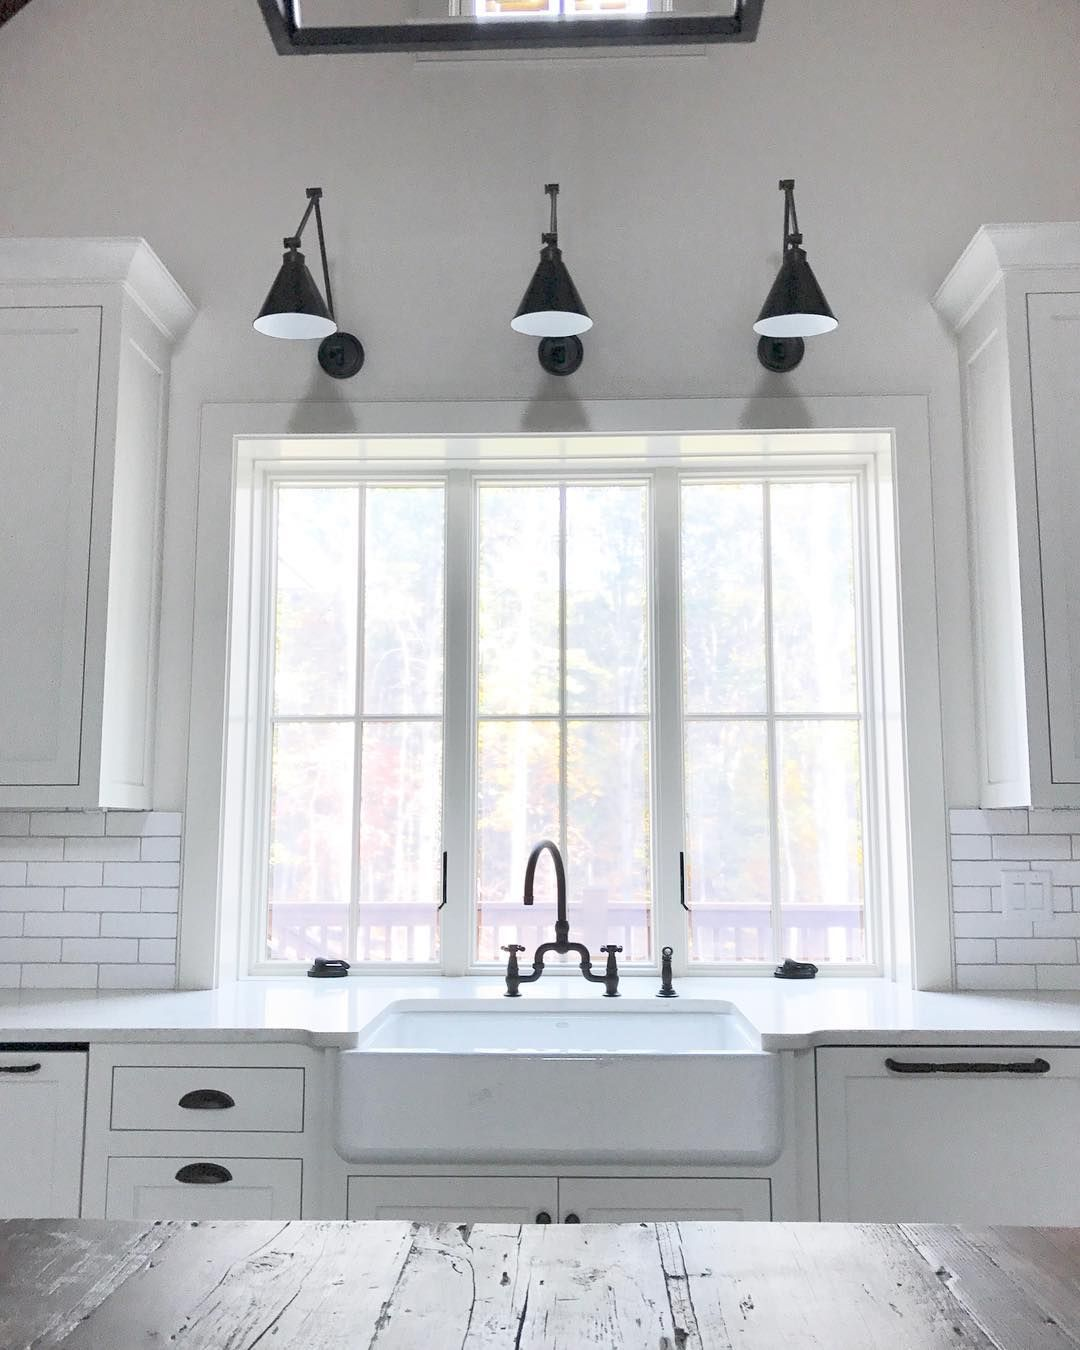 Kitchen Pantry Lighting: Home Kitchens, Home Decor, Cottage Kitchens